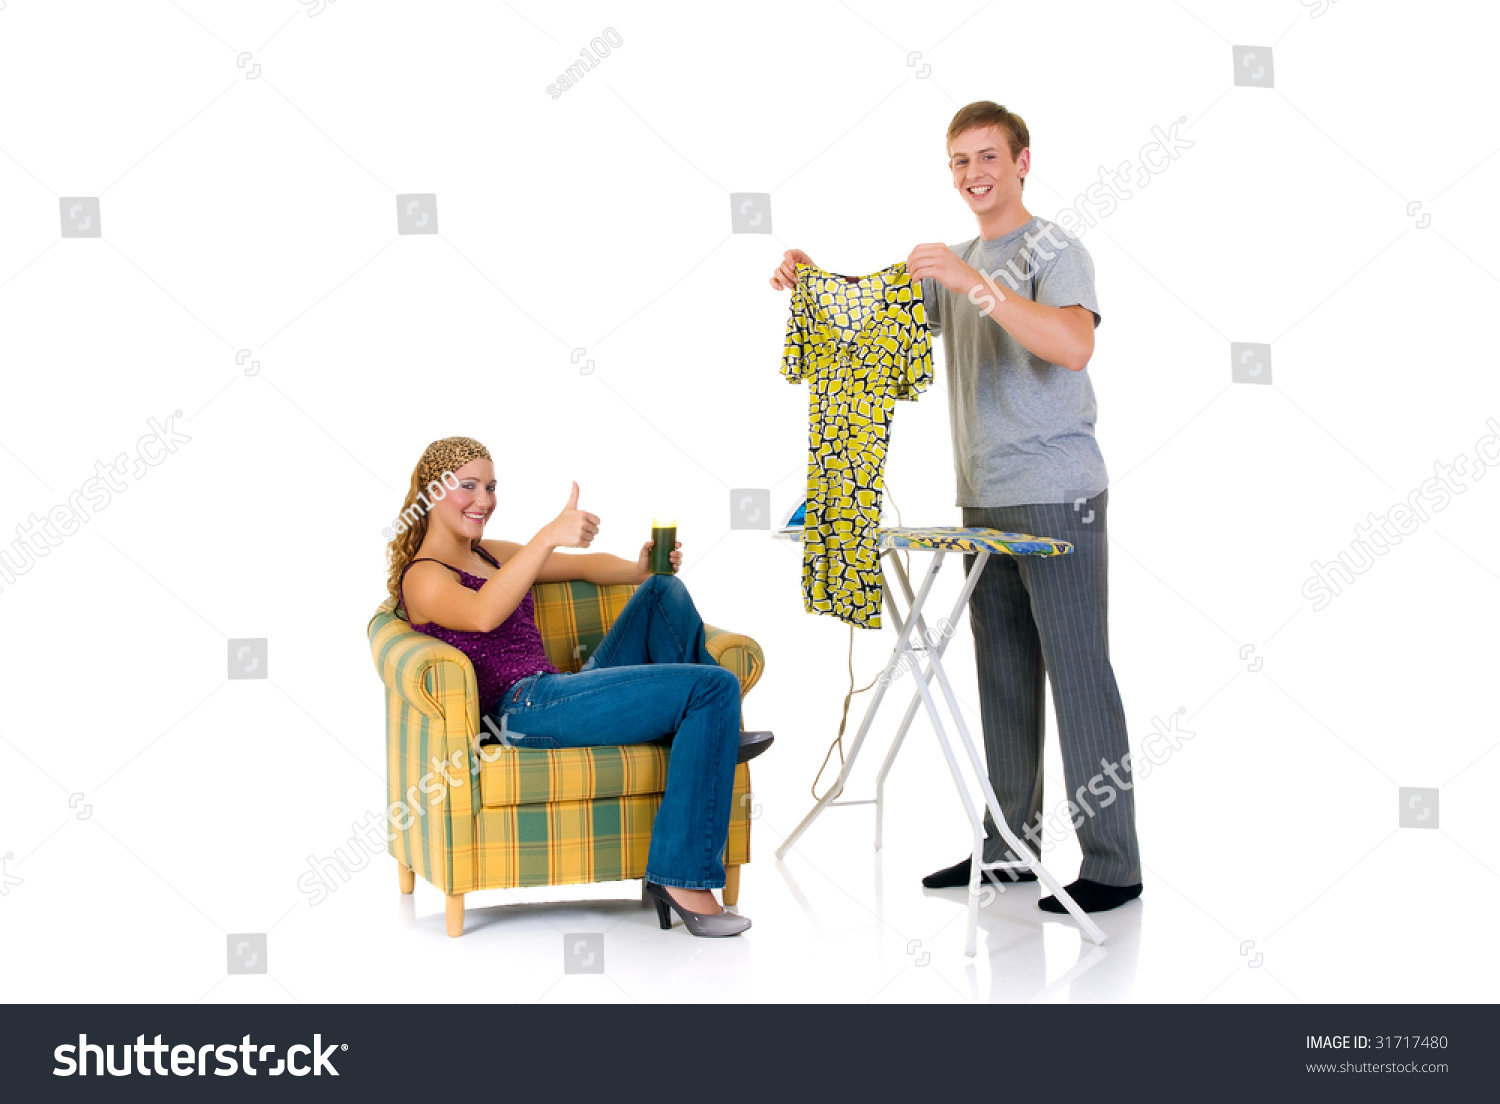 e030f1f990 Young Bossy Woman Sofa Man Ironing Stock Photo (Edit Now) 31717480 ...